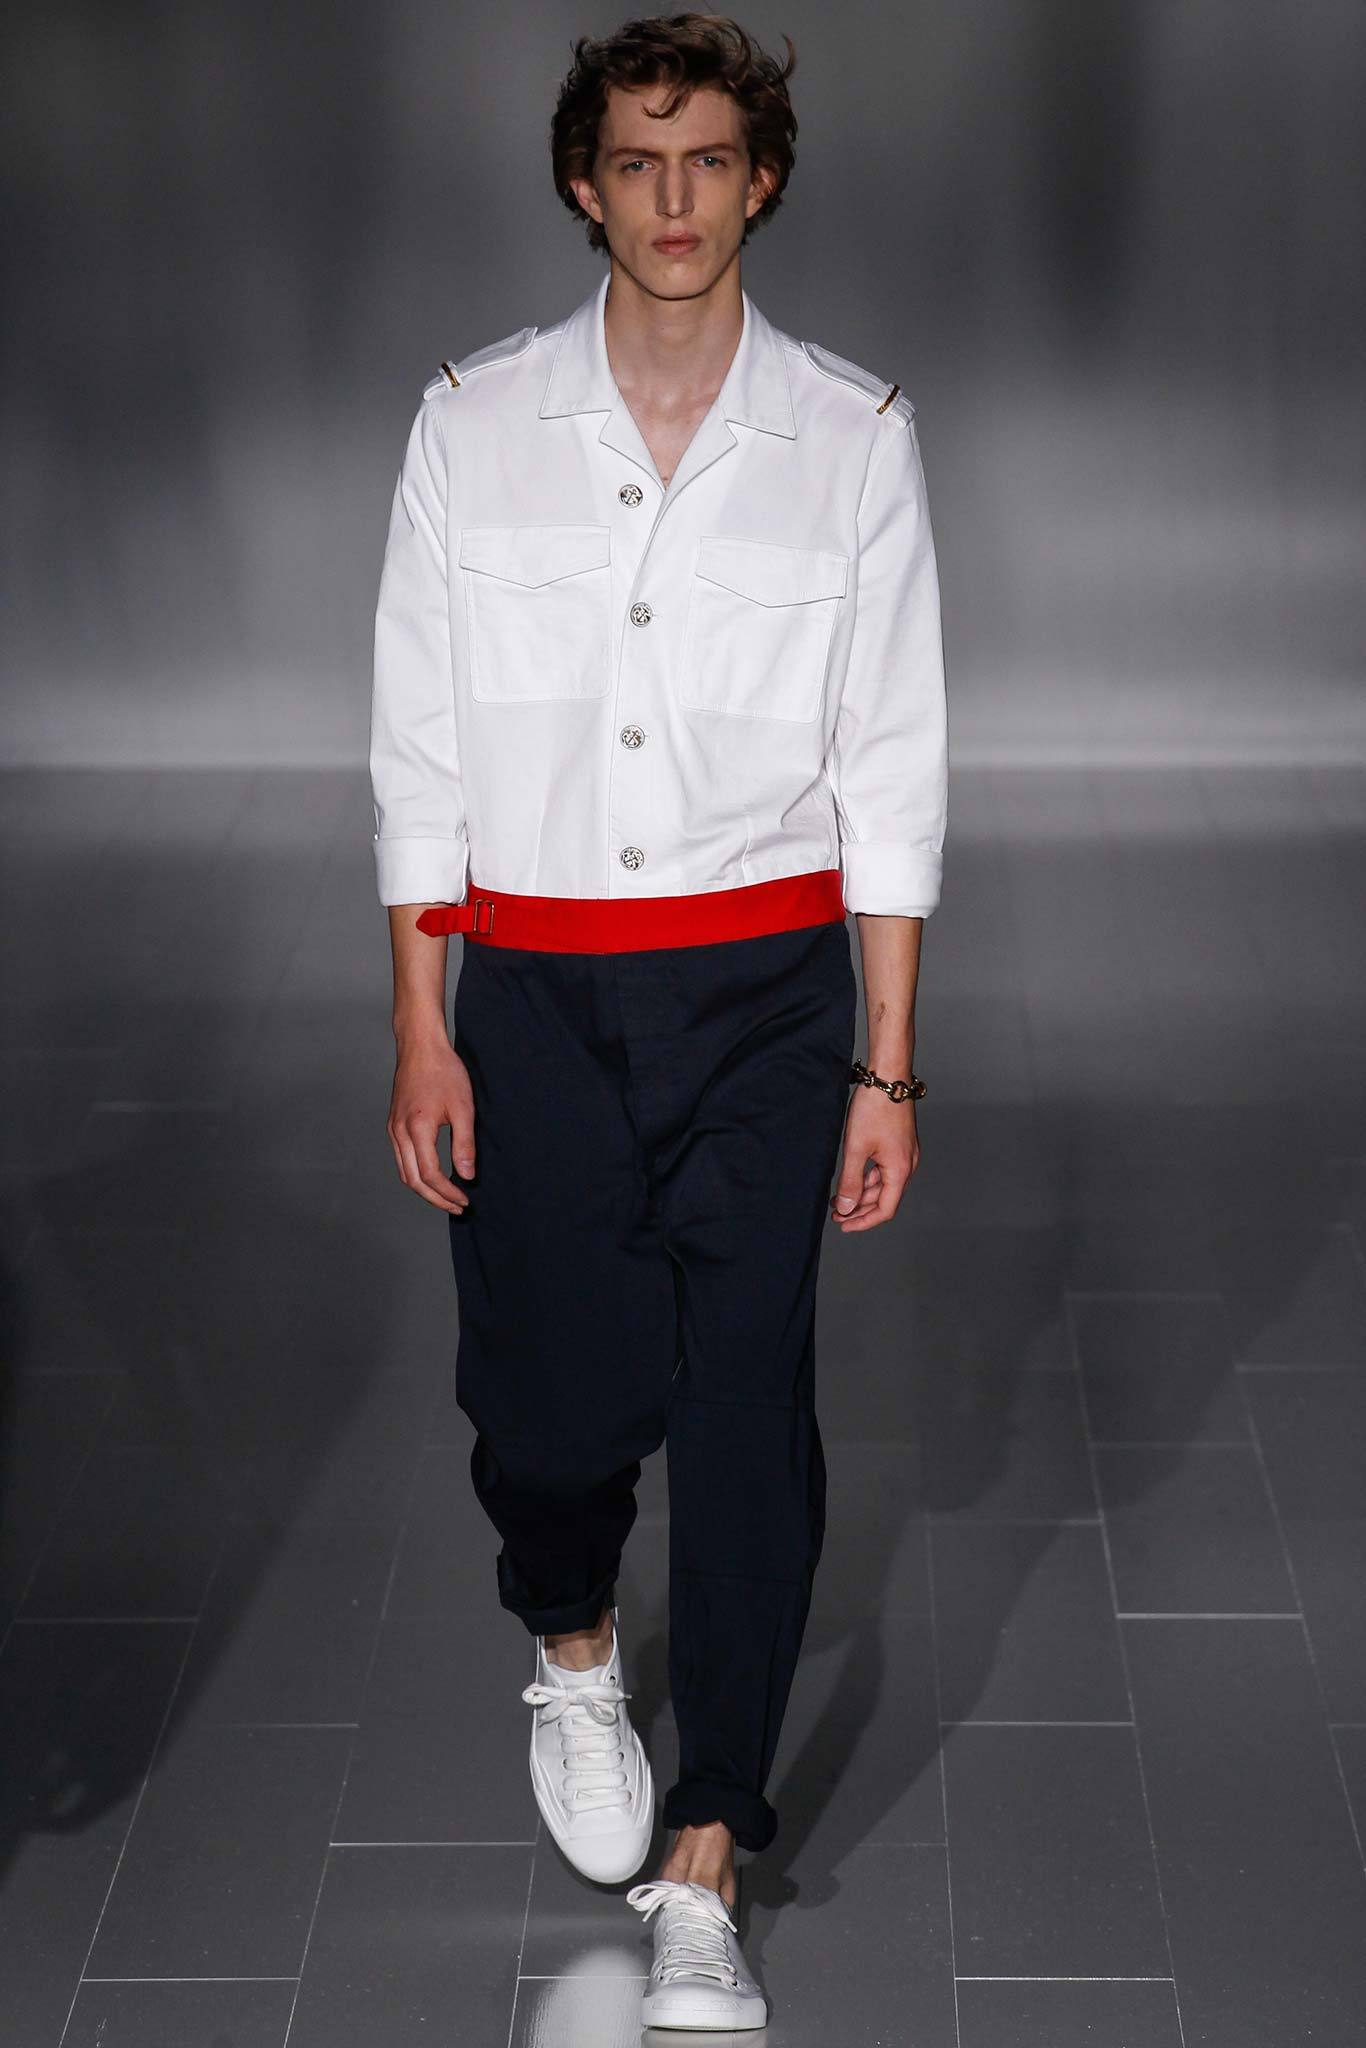 Gucci 2015 Spring/Summer Collection